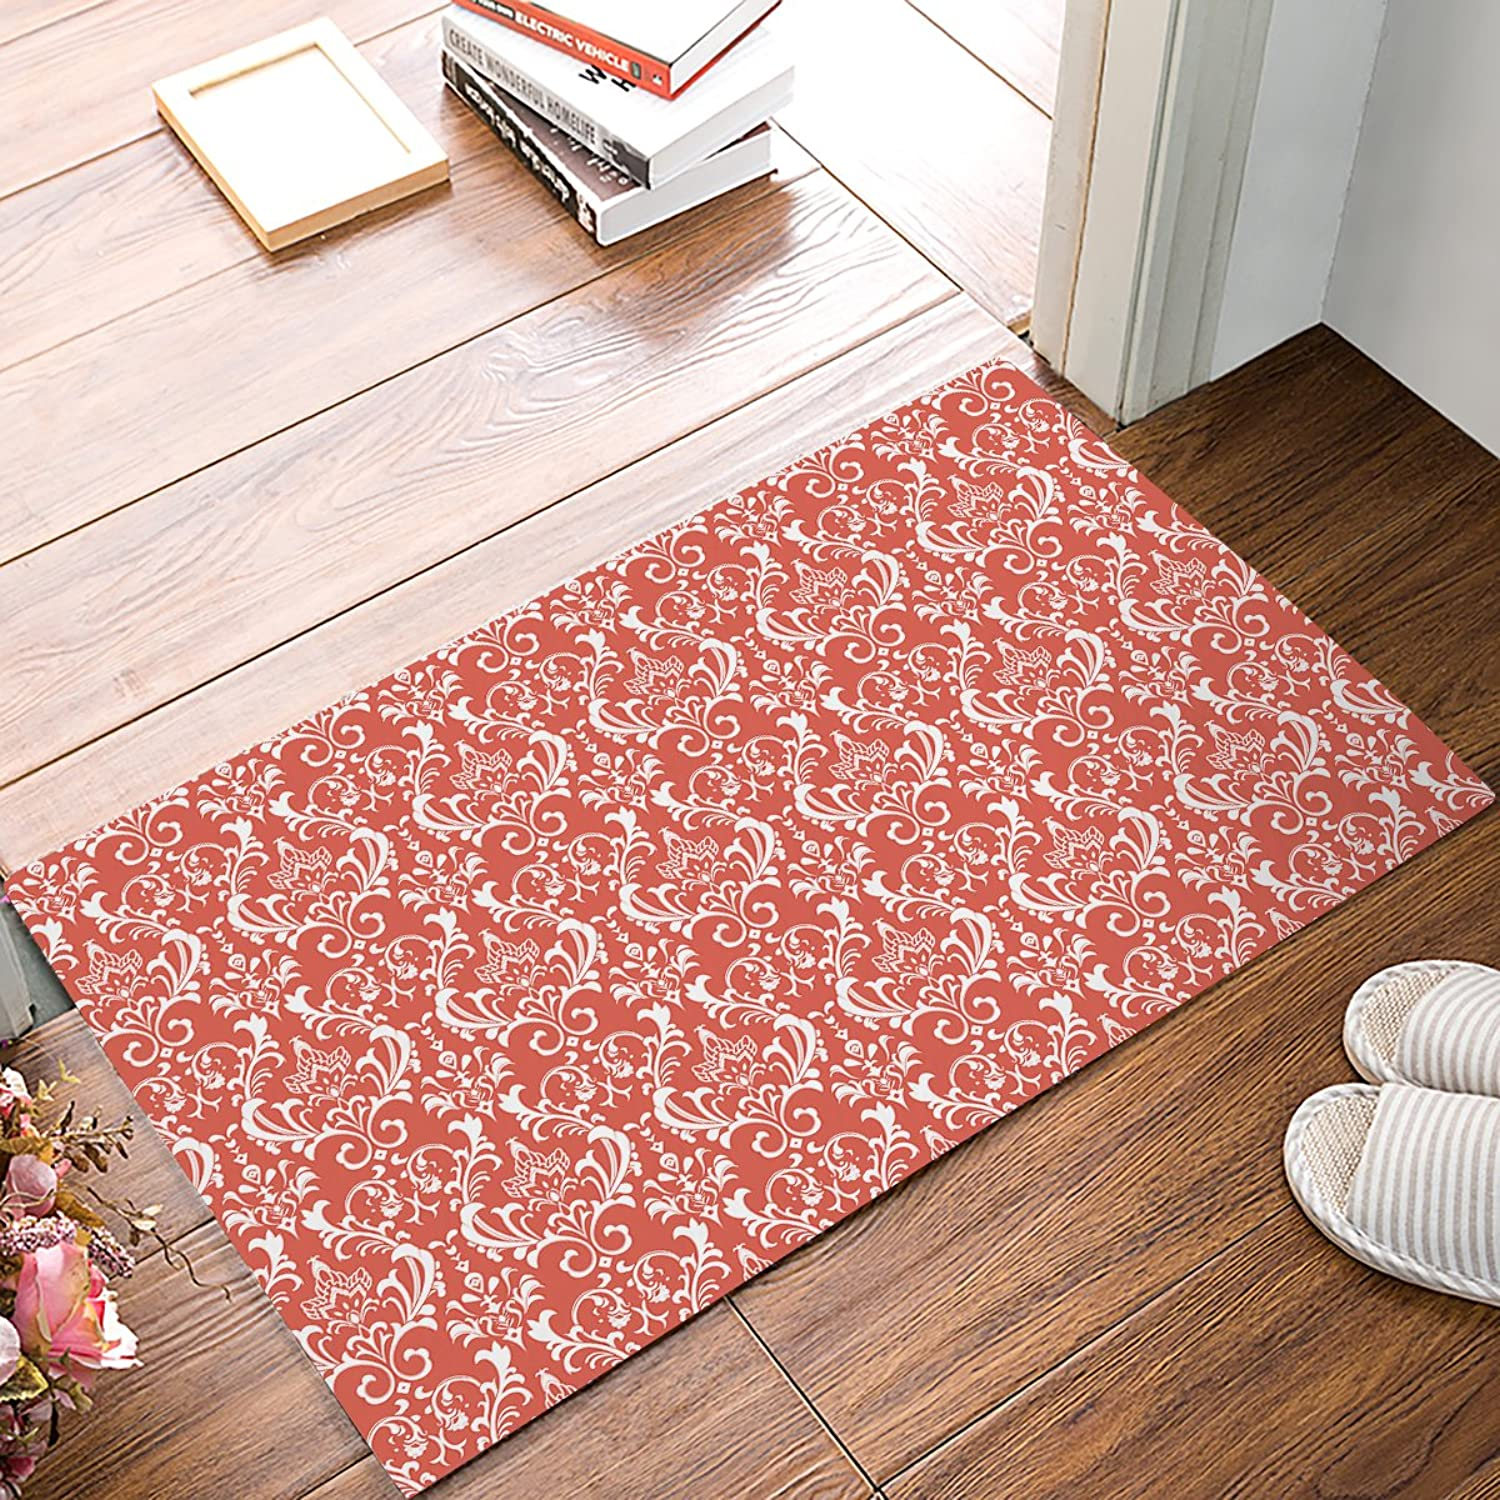 DaringOne Coral red Paisley Floral French Damask Pattern Indoor Outdoor Non-Slip Rubber Welcome Mats Floor Rug for Bathroom Front Entryway 30 (L) x 18 (W)